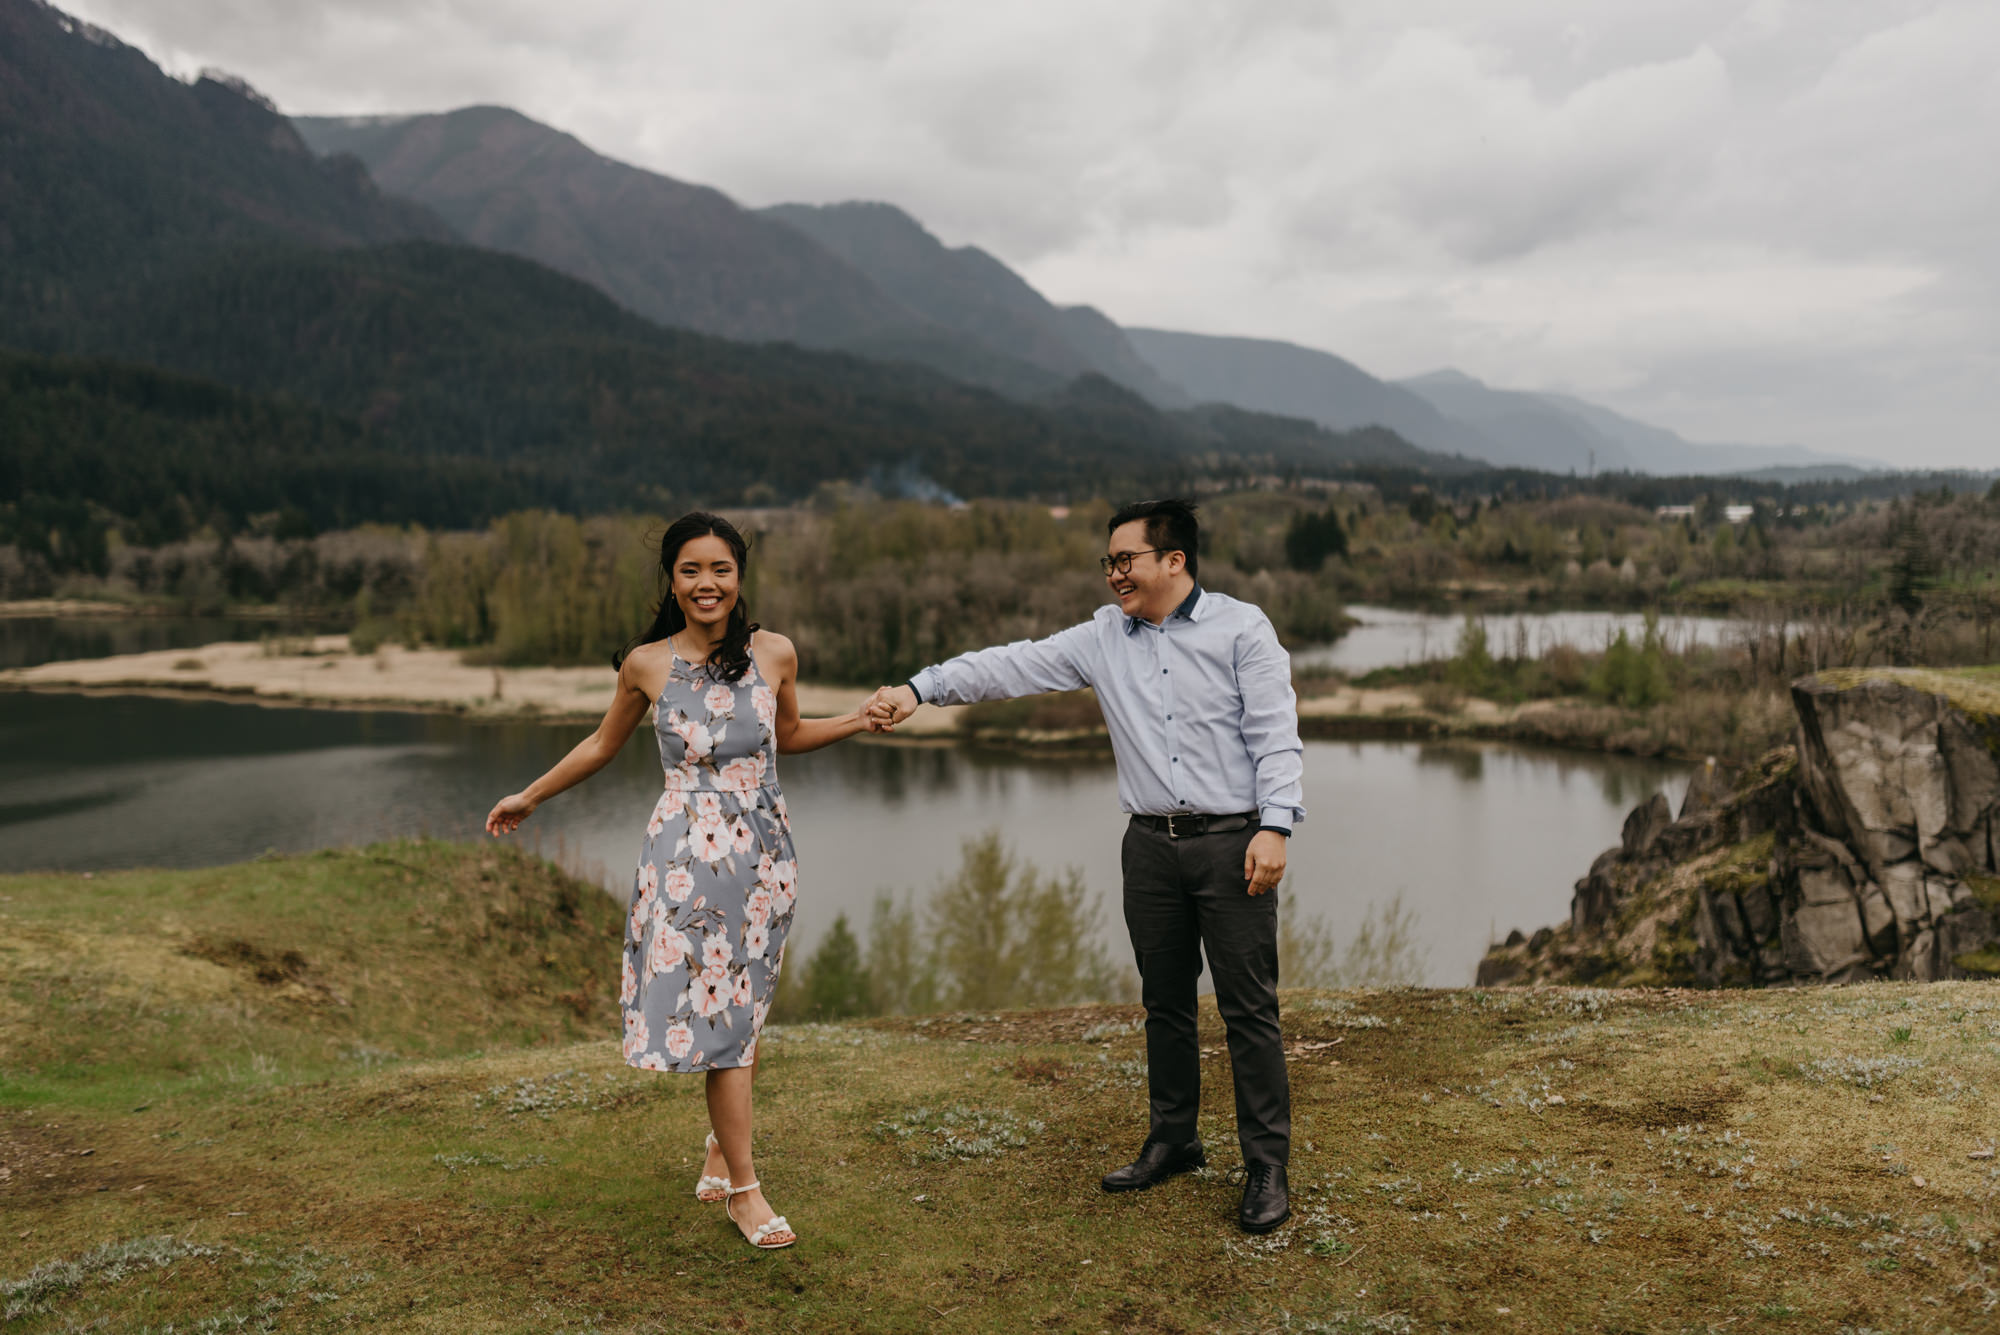 cascade-locks-engagement-cloudy-fun-sunset-4829.jpg